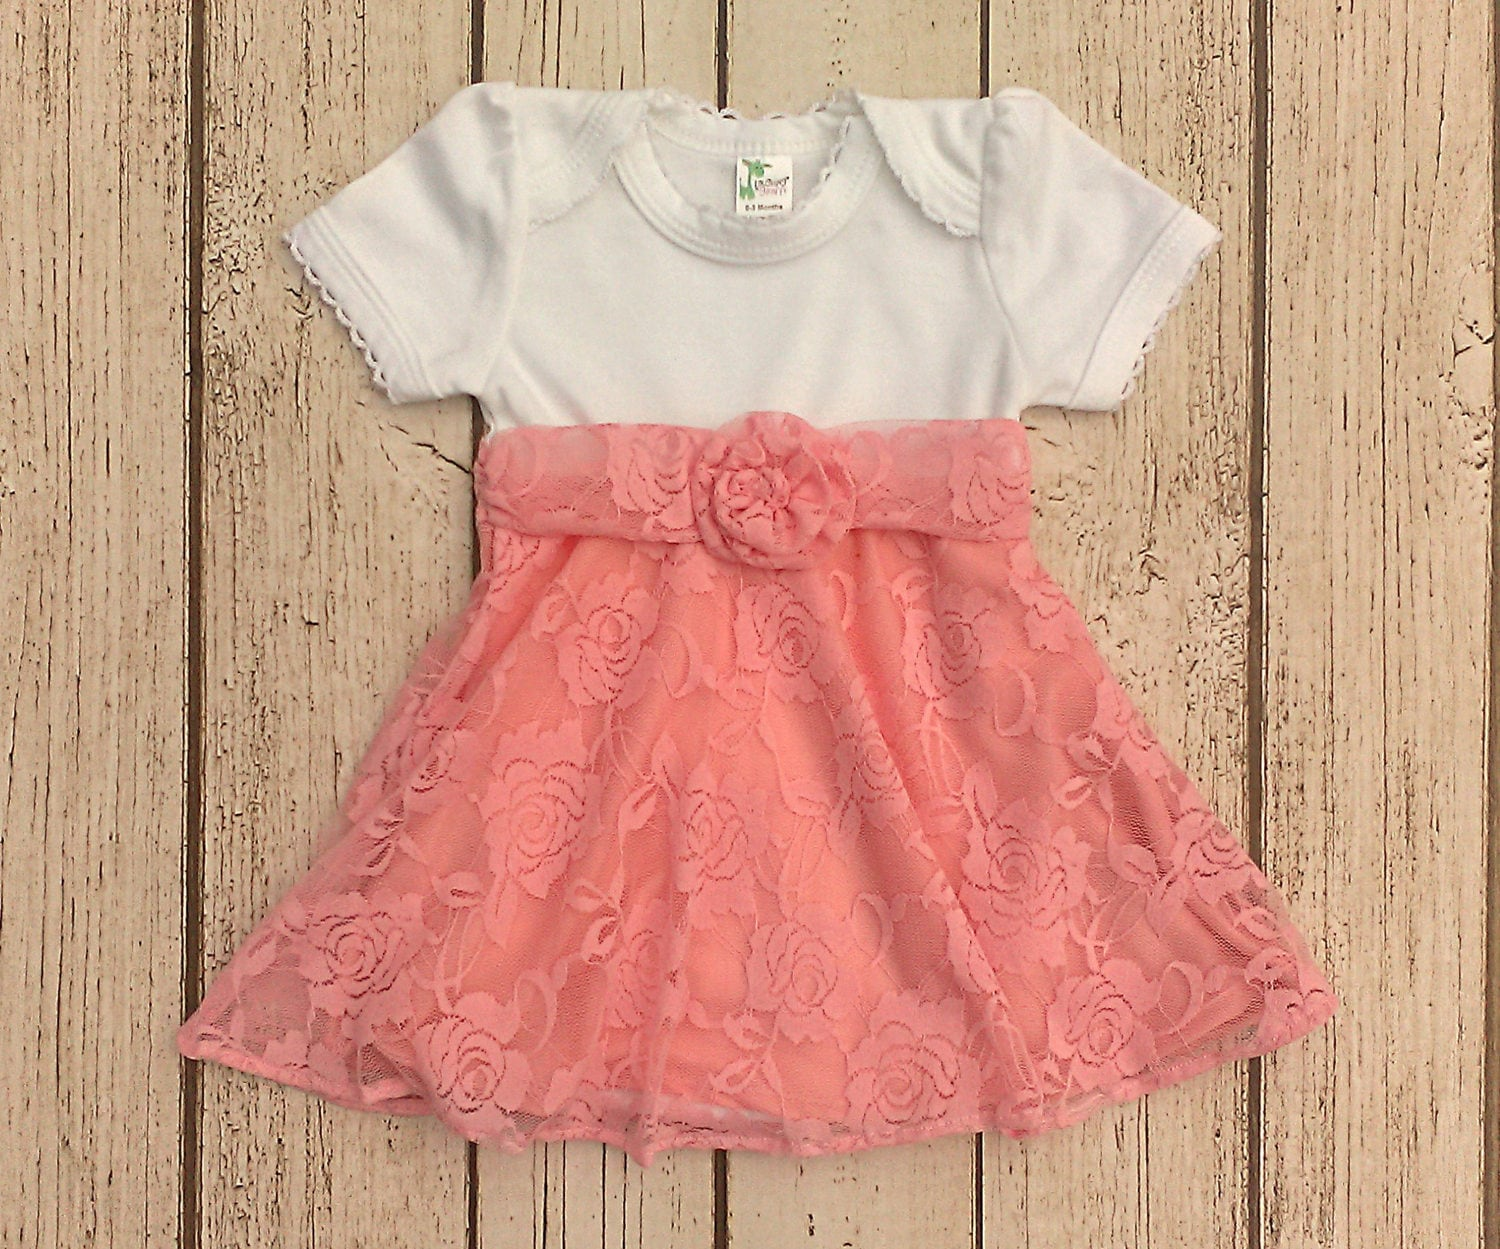 0b94632d5 Baby Boutique Clothing - Hair Bows for Little Girls at .